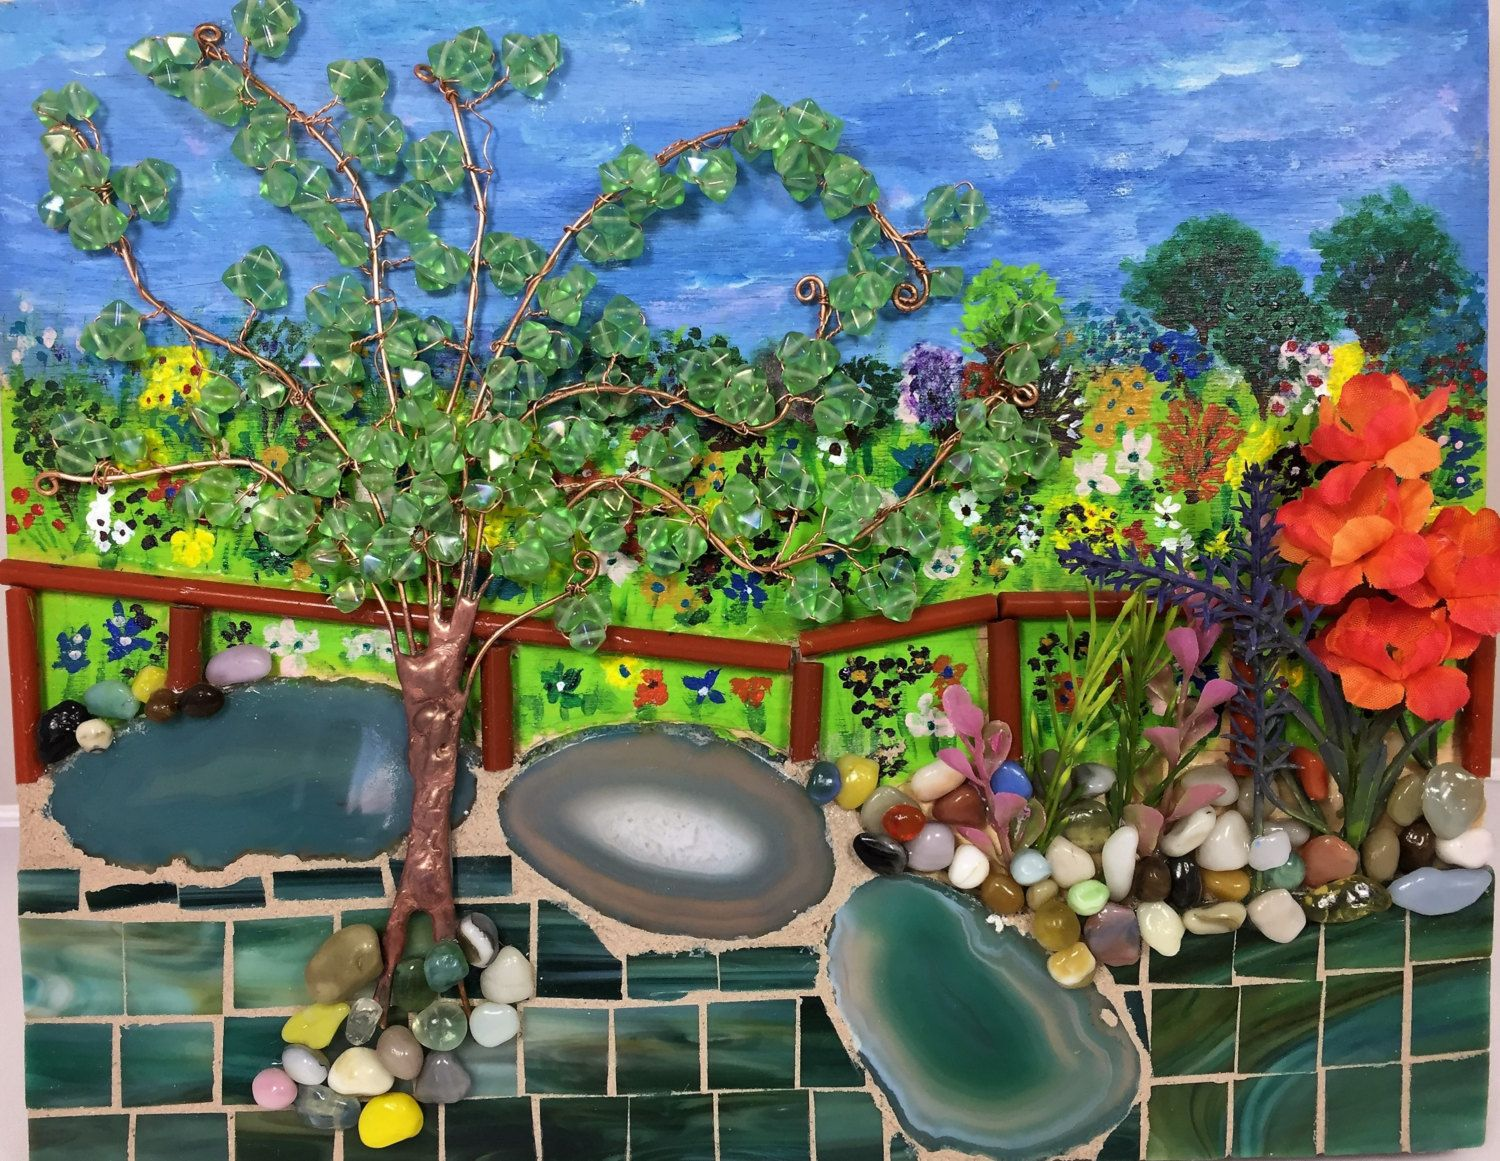 View from the Garden Bridge - Mosaic by SuzanneImagineArt on Etsy